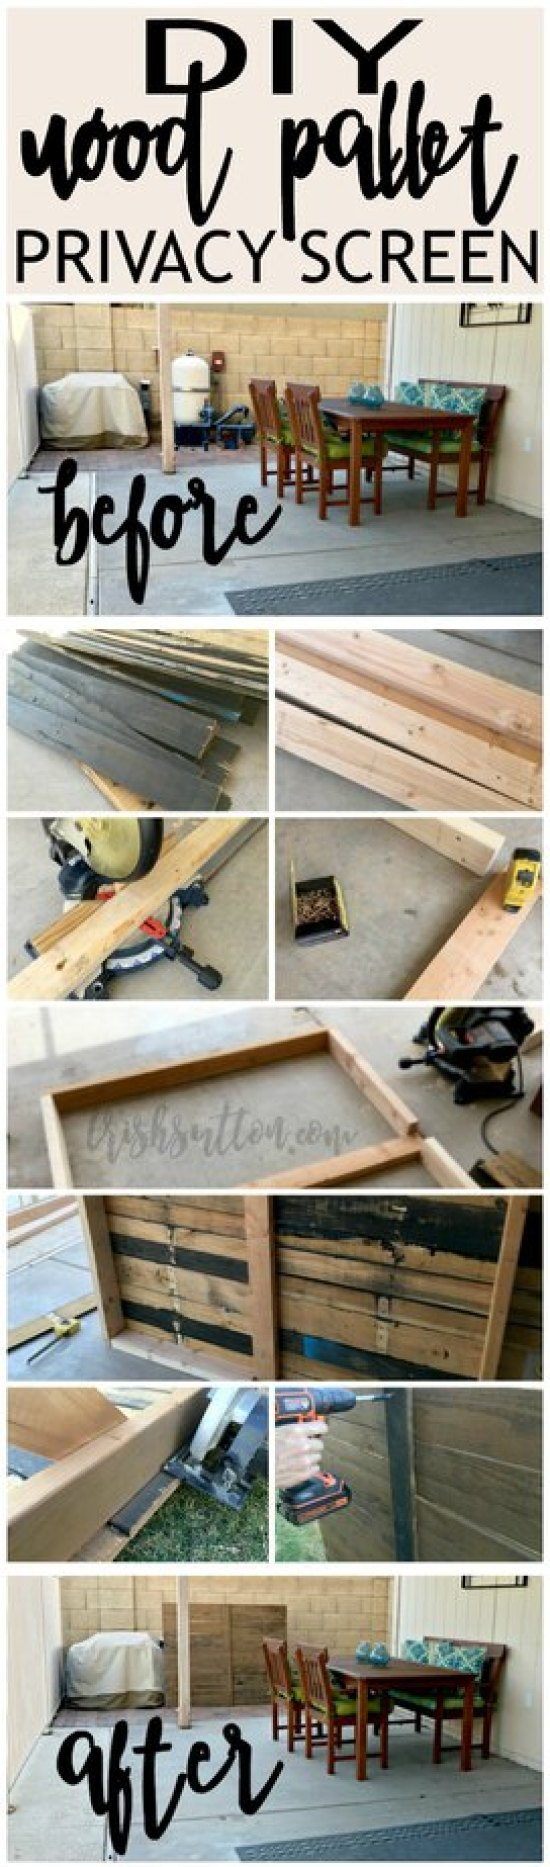 DIY Outdoor Wood Pallet Privacy Screen; Hide garbage cans, pool pumps, outdoor tools. TrishSutton.com